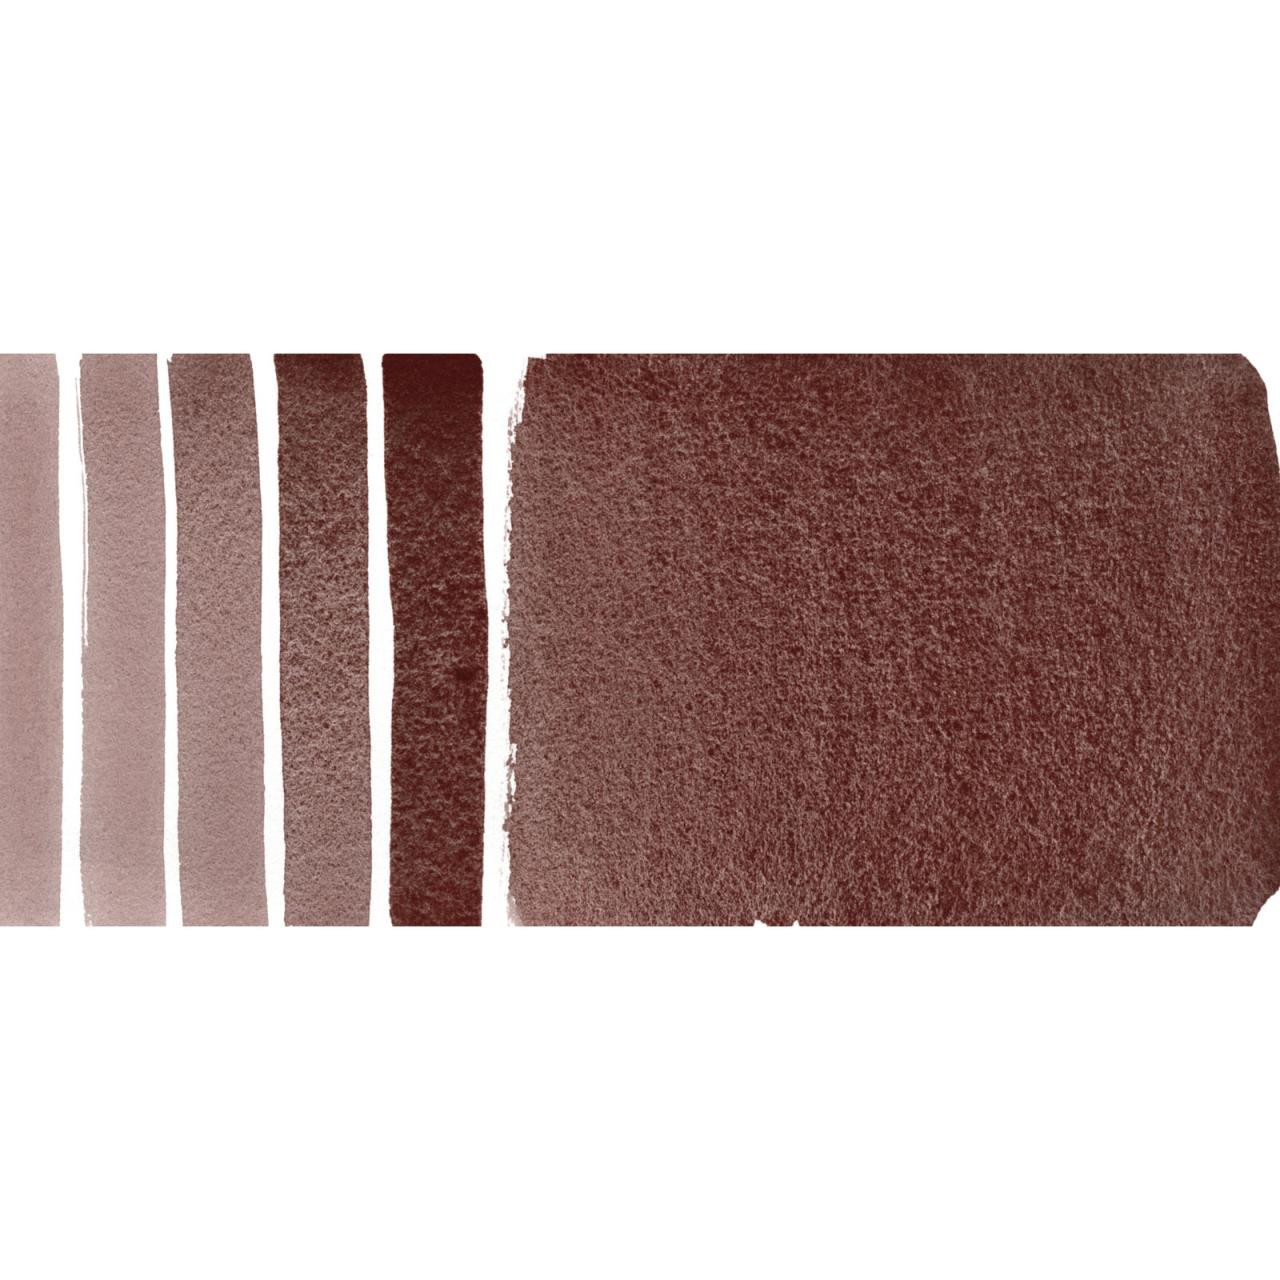 Lunar Red Rock, DANIEL SMITH Extra Fine Watercolors 15ml Tubes -